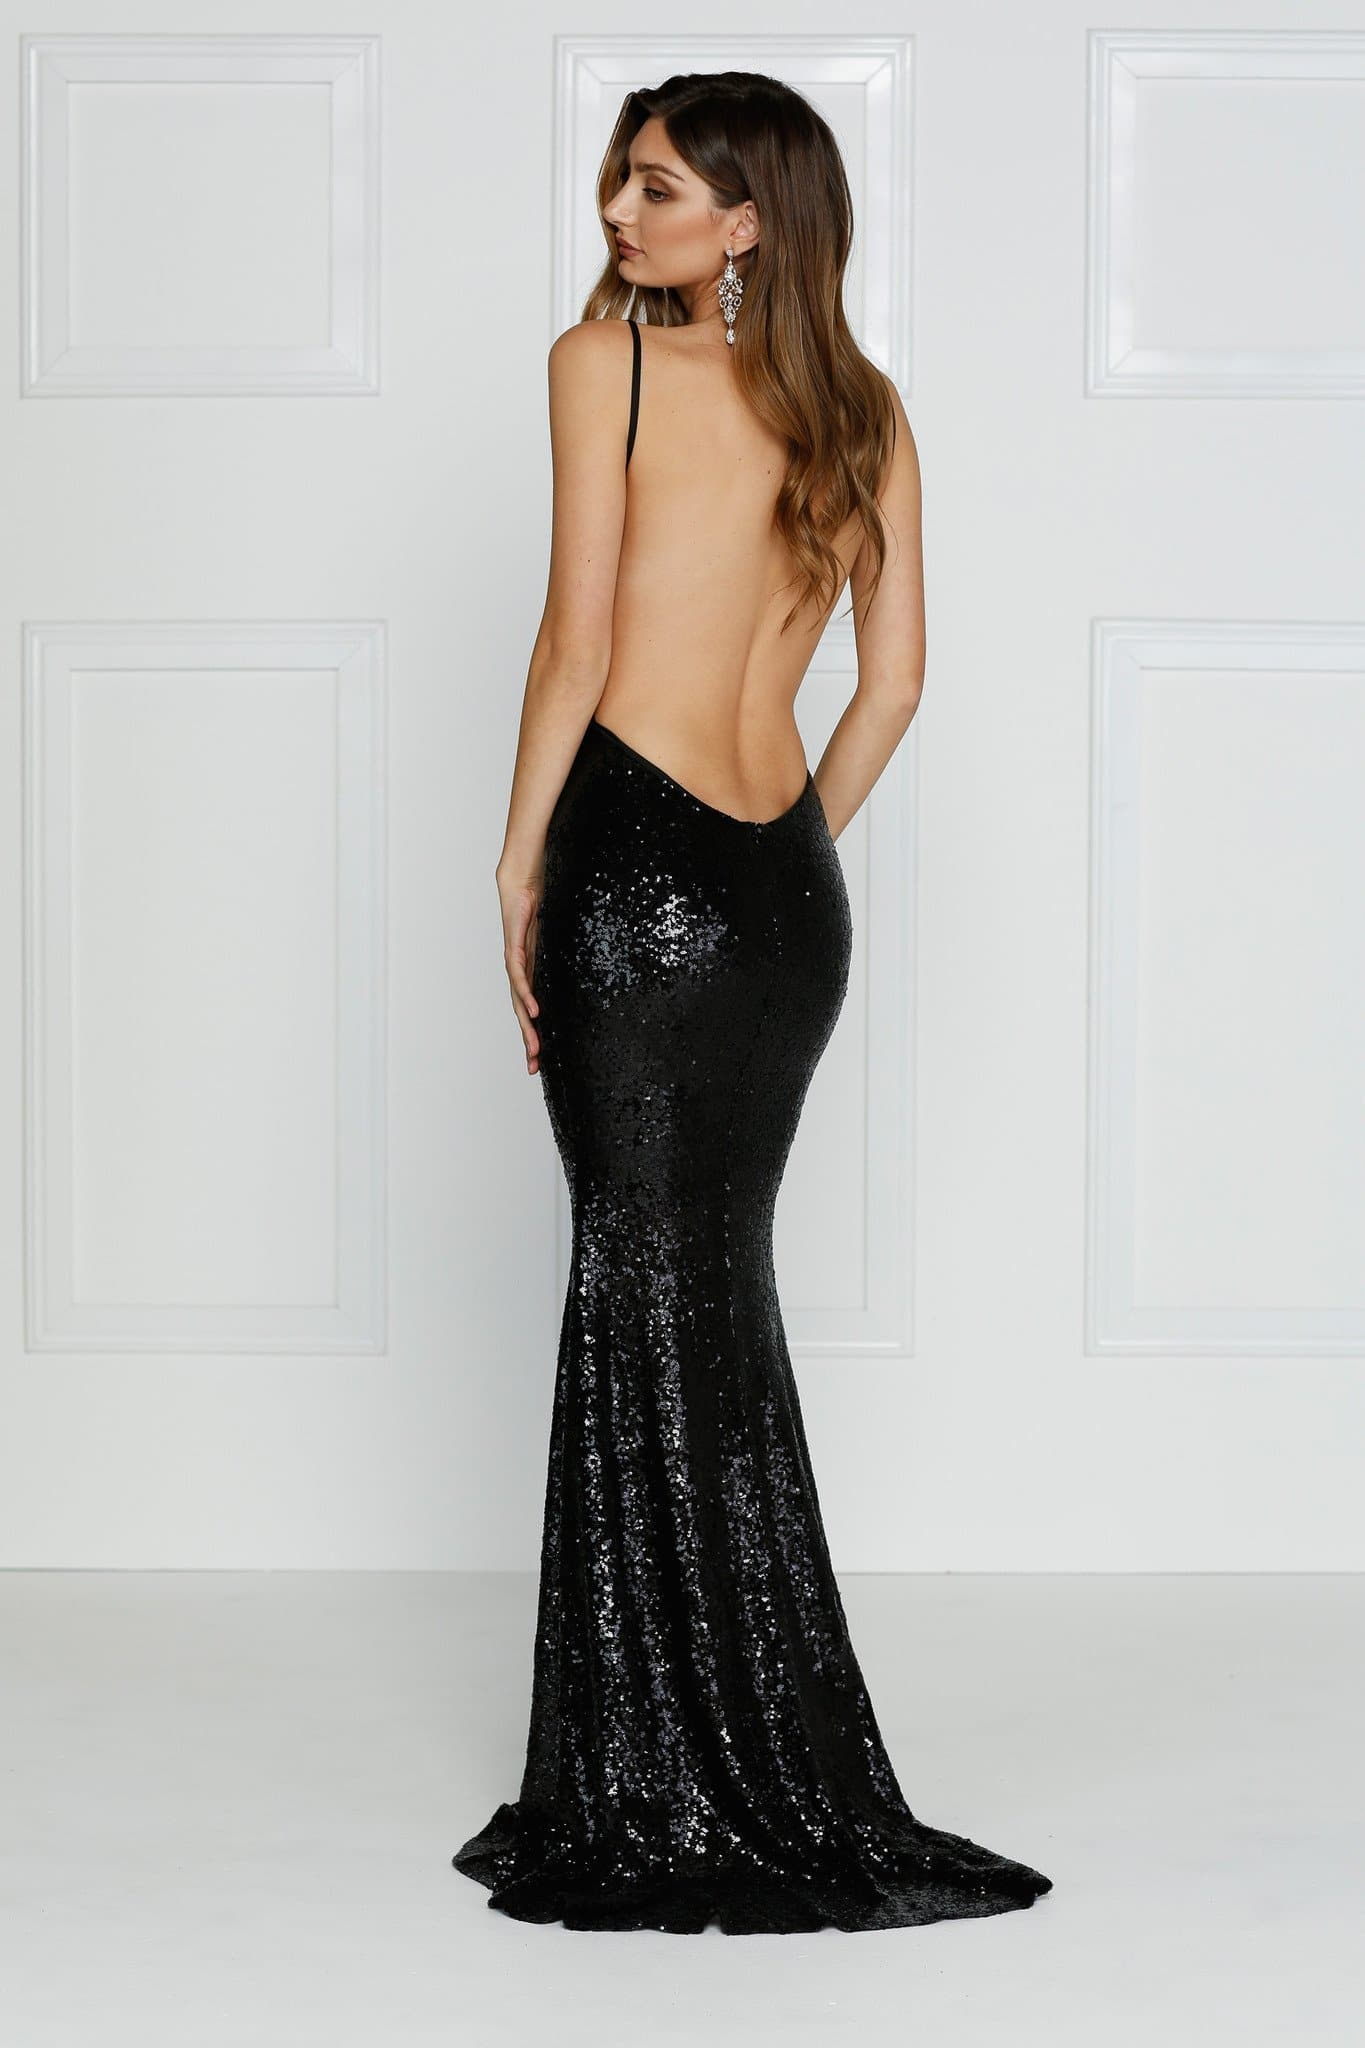 Yassmine Gown - Black Sequin V Neck Open Back Fitted Mermaid Dress